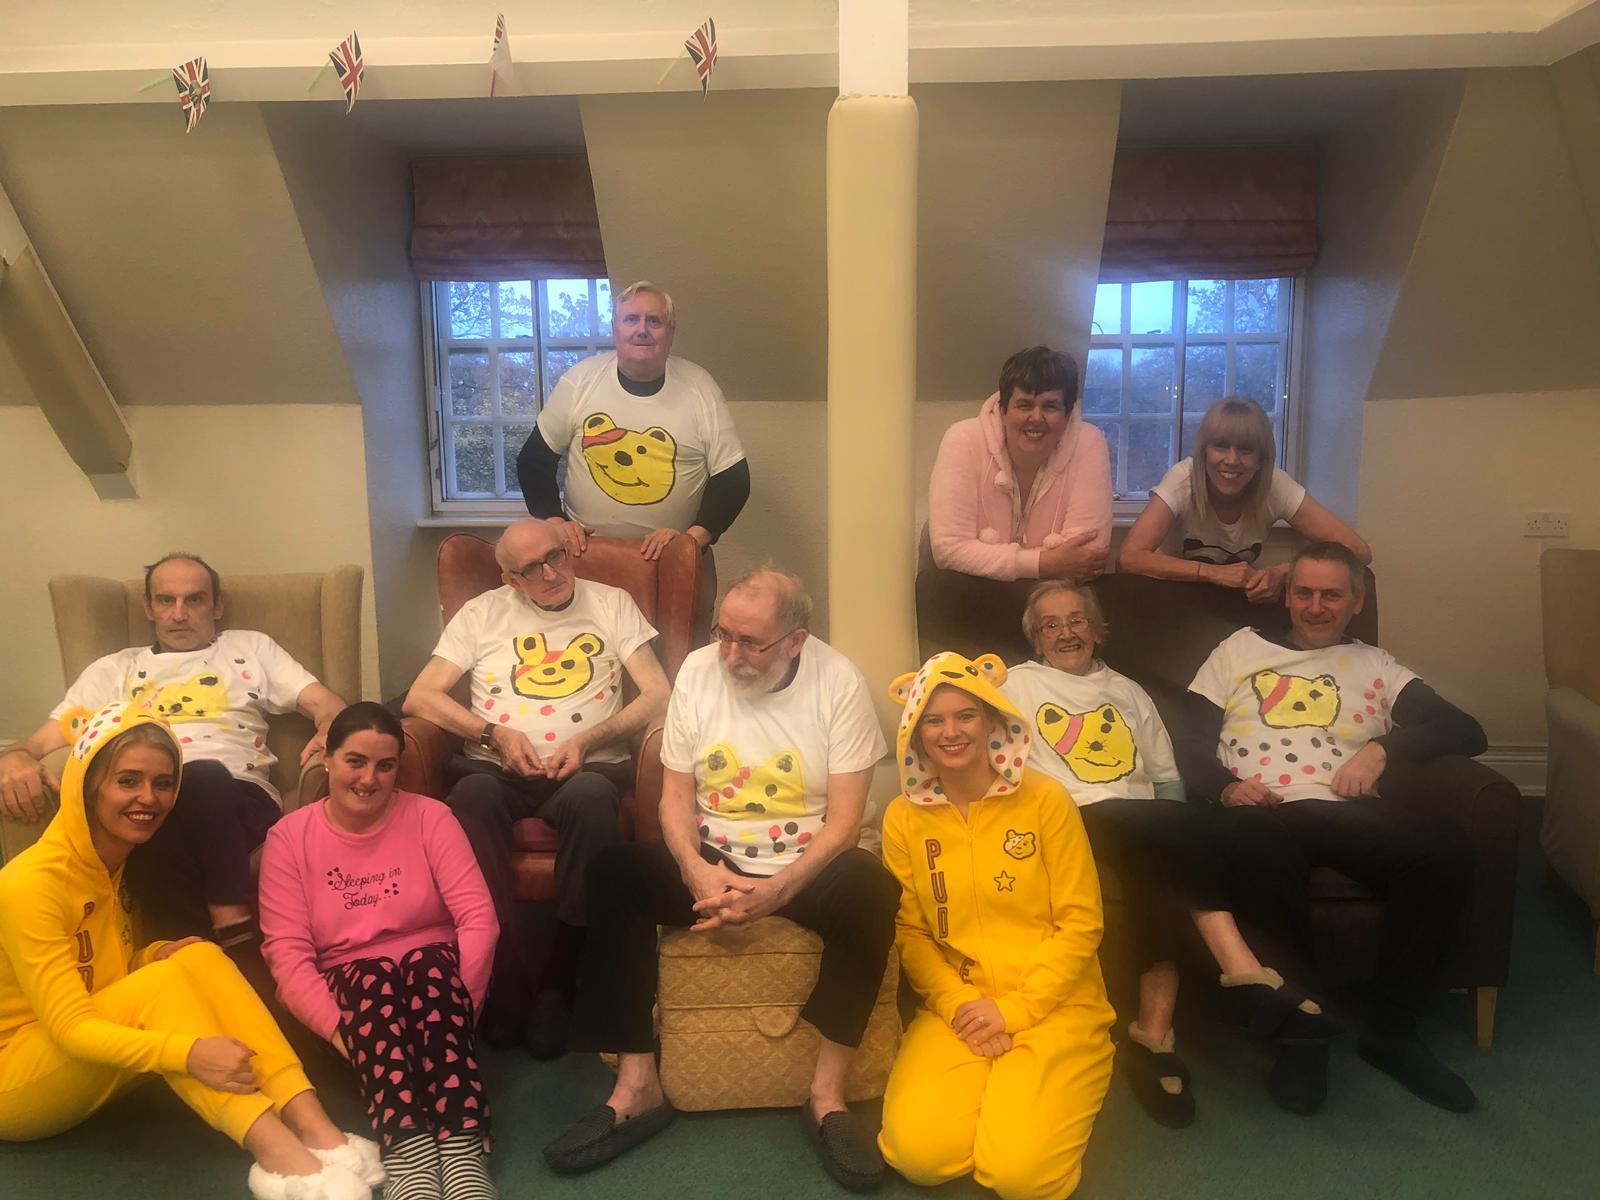 Children In Need 2018 at Victoria House Care Centre: Key Healthcare is dedicated to caring for elderly residents in safe. We have multiple dementia care homes including our care home middlesbrough, our care home St. Helen and care home saltburn. We excel in monitoring and improving care levels.